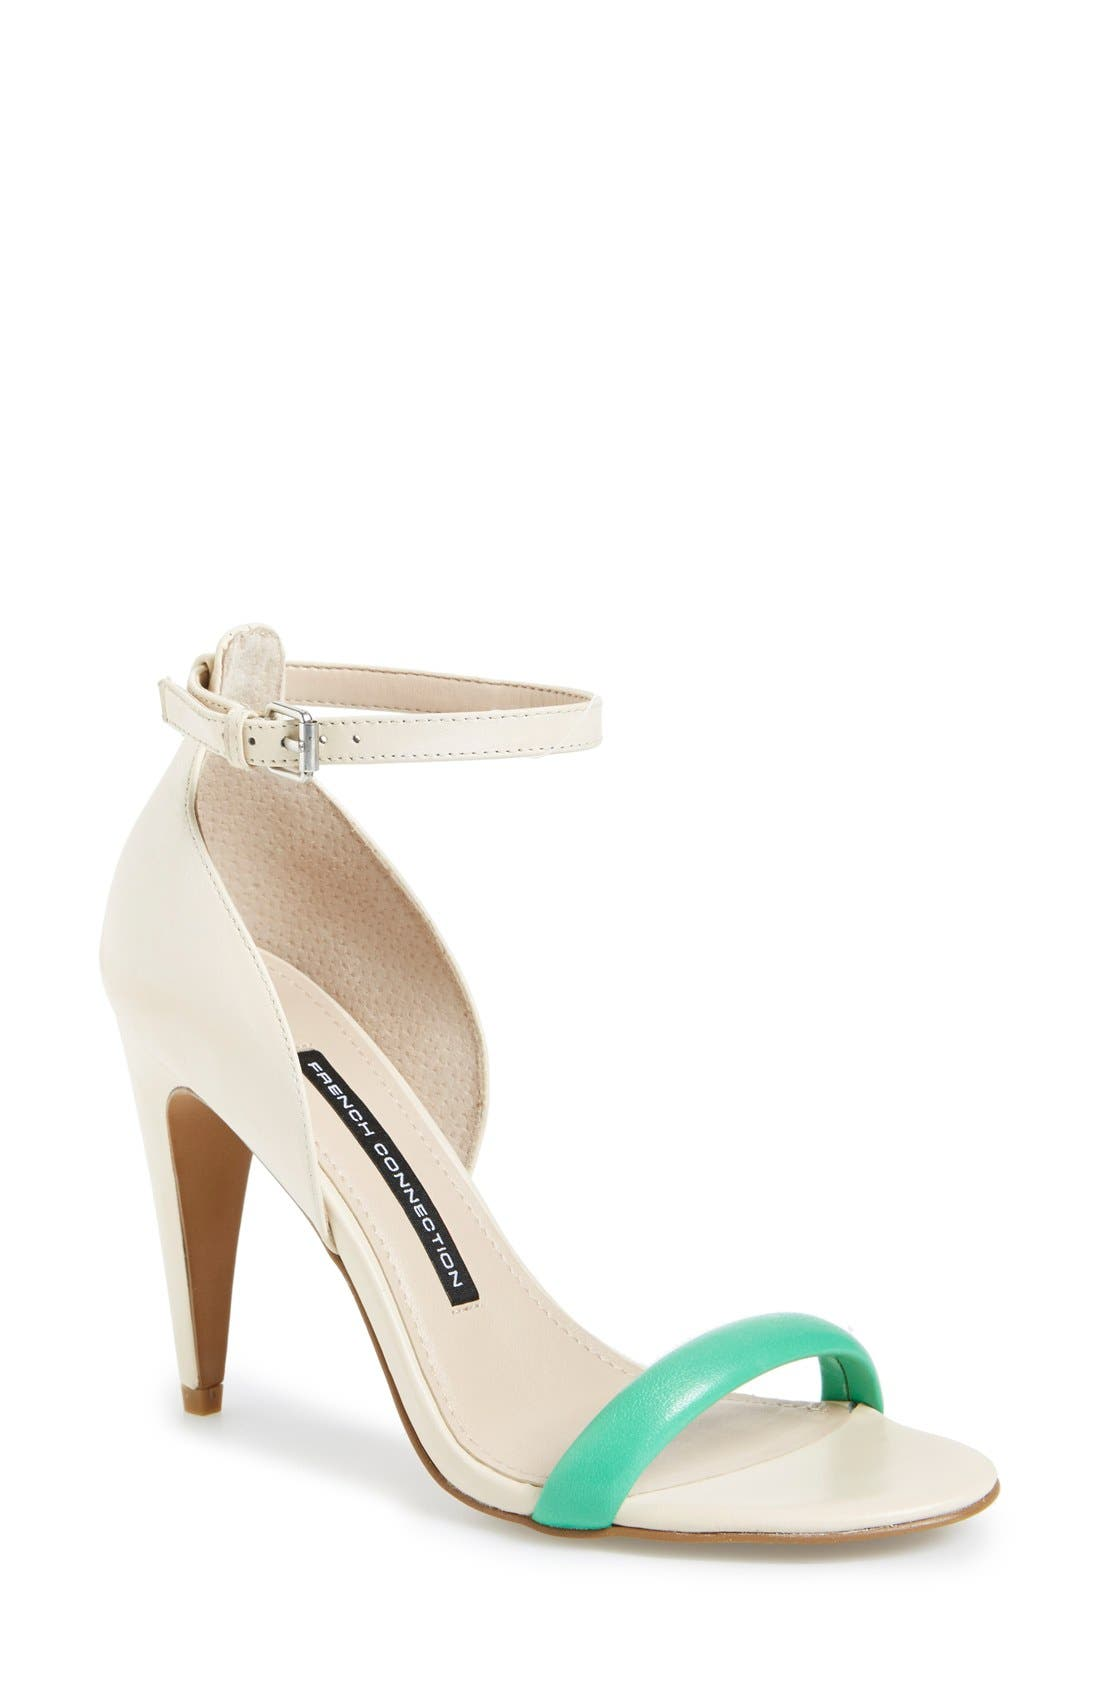 Main Image - French Connection 'Nanette' Ankle Strap Sandal (Women)